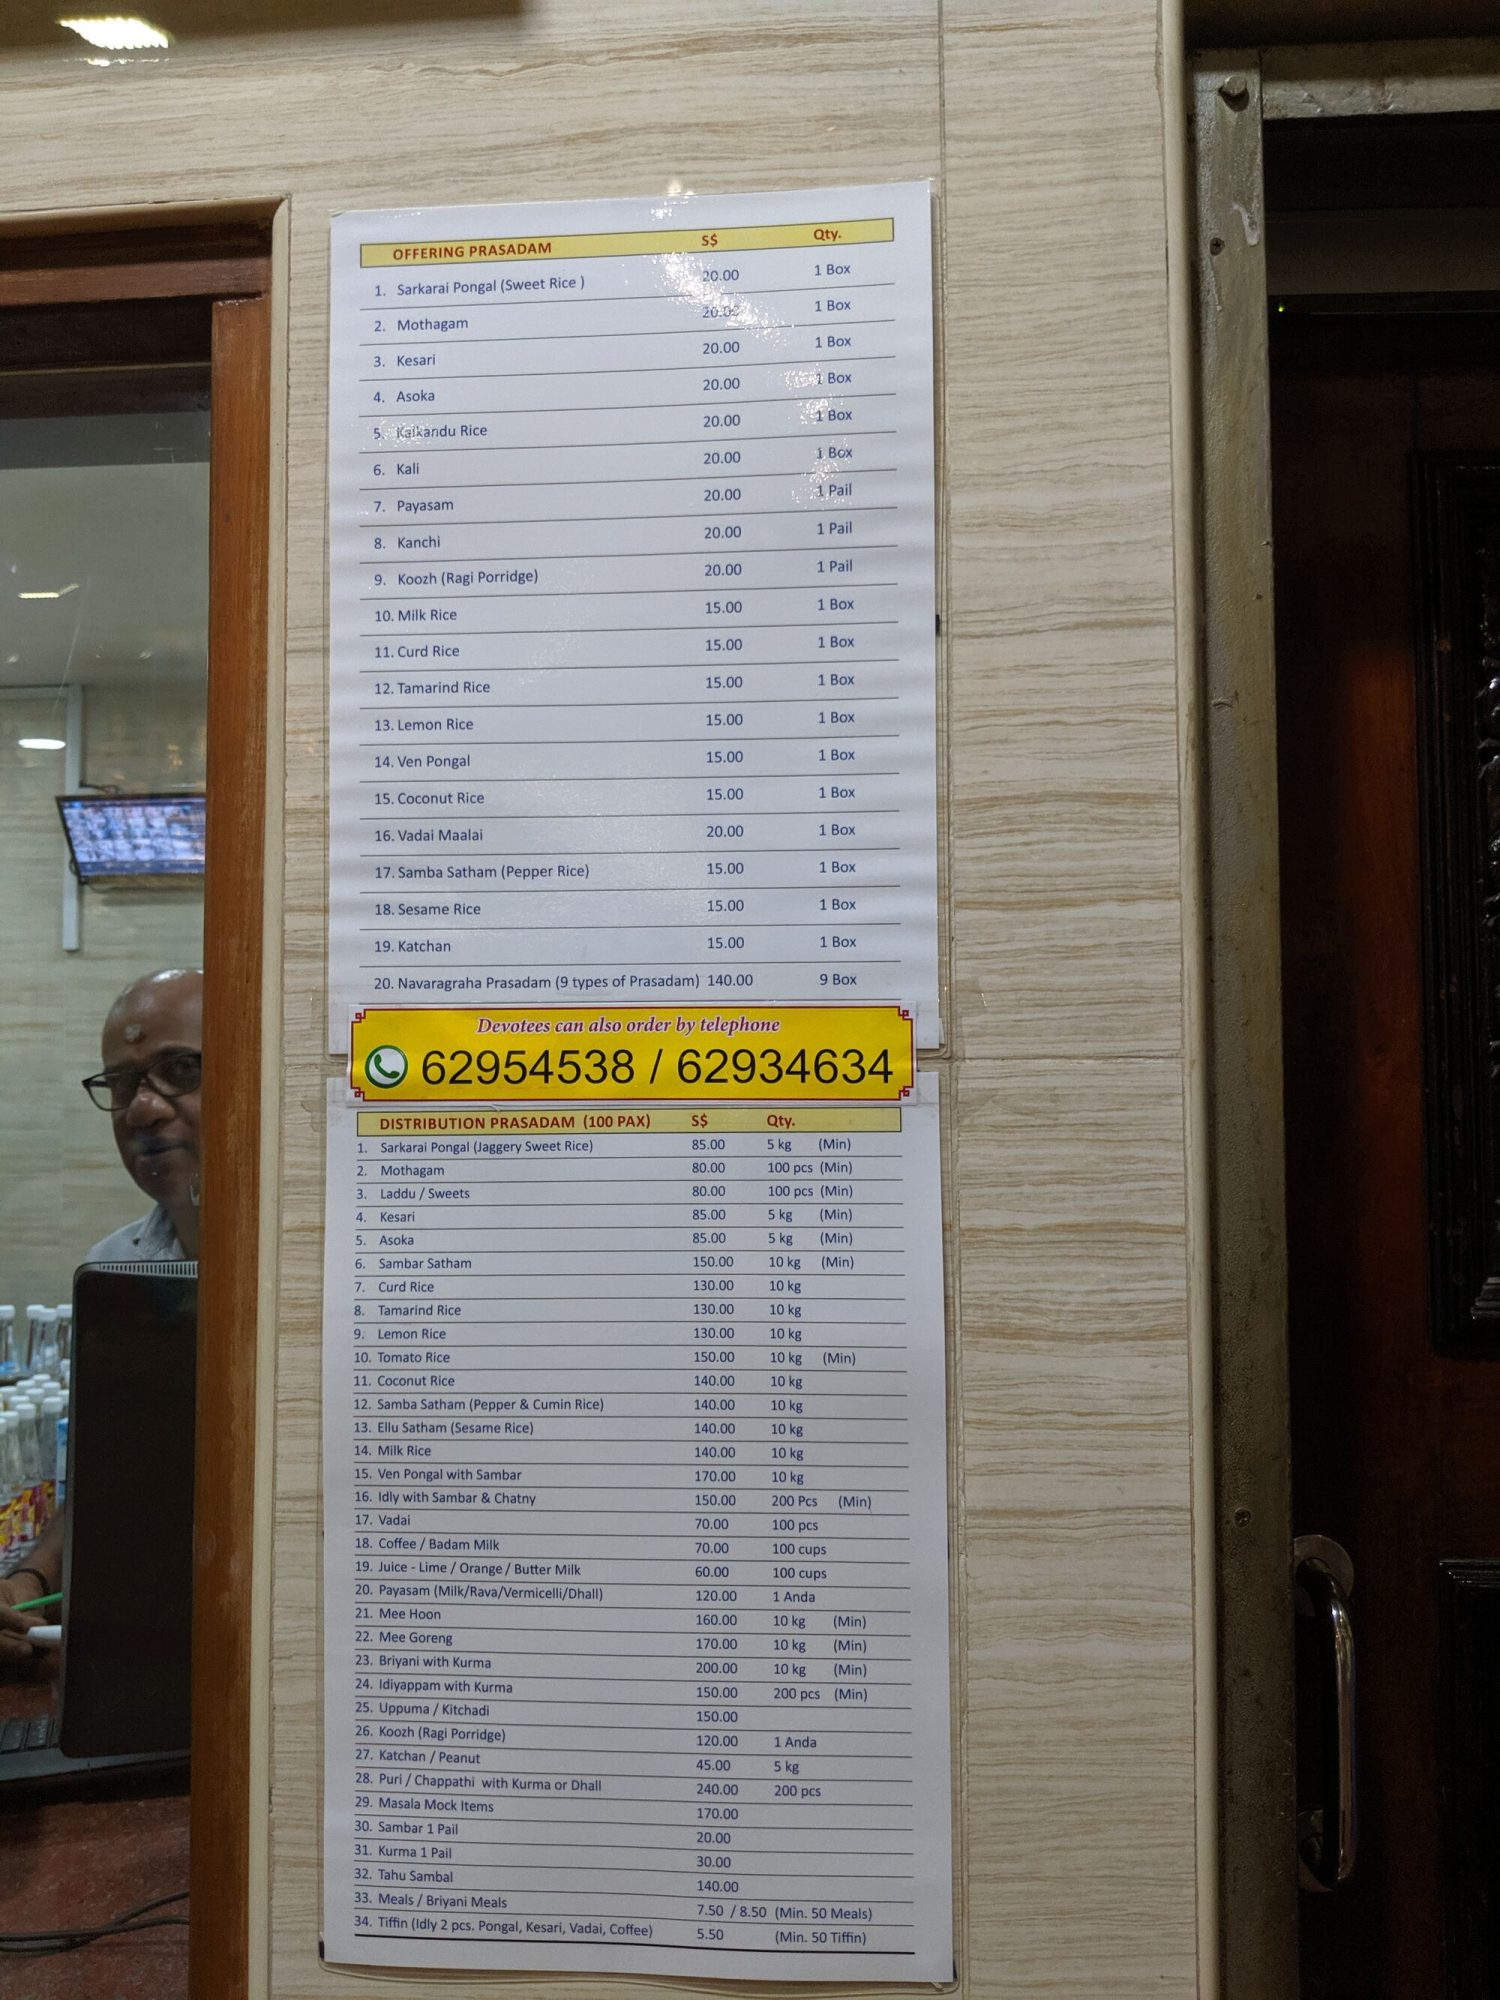 List of offering prasadams and charges at the Sri Veeramakaliamman Temple, Singapore